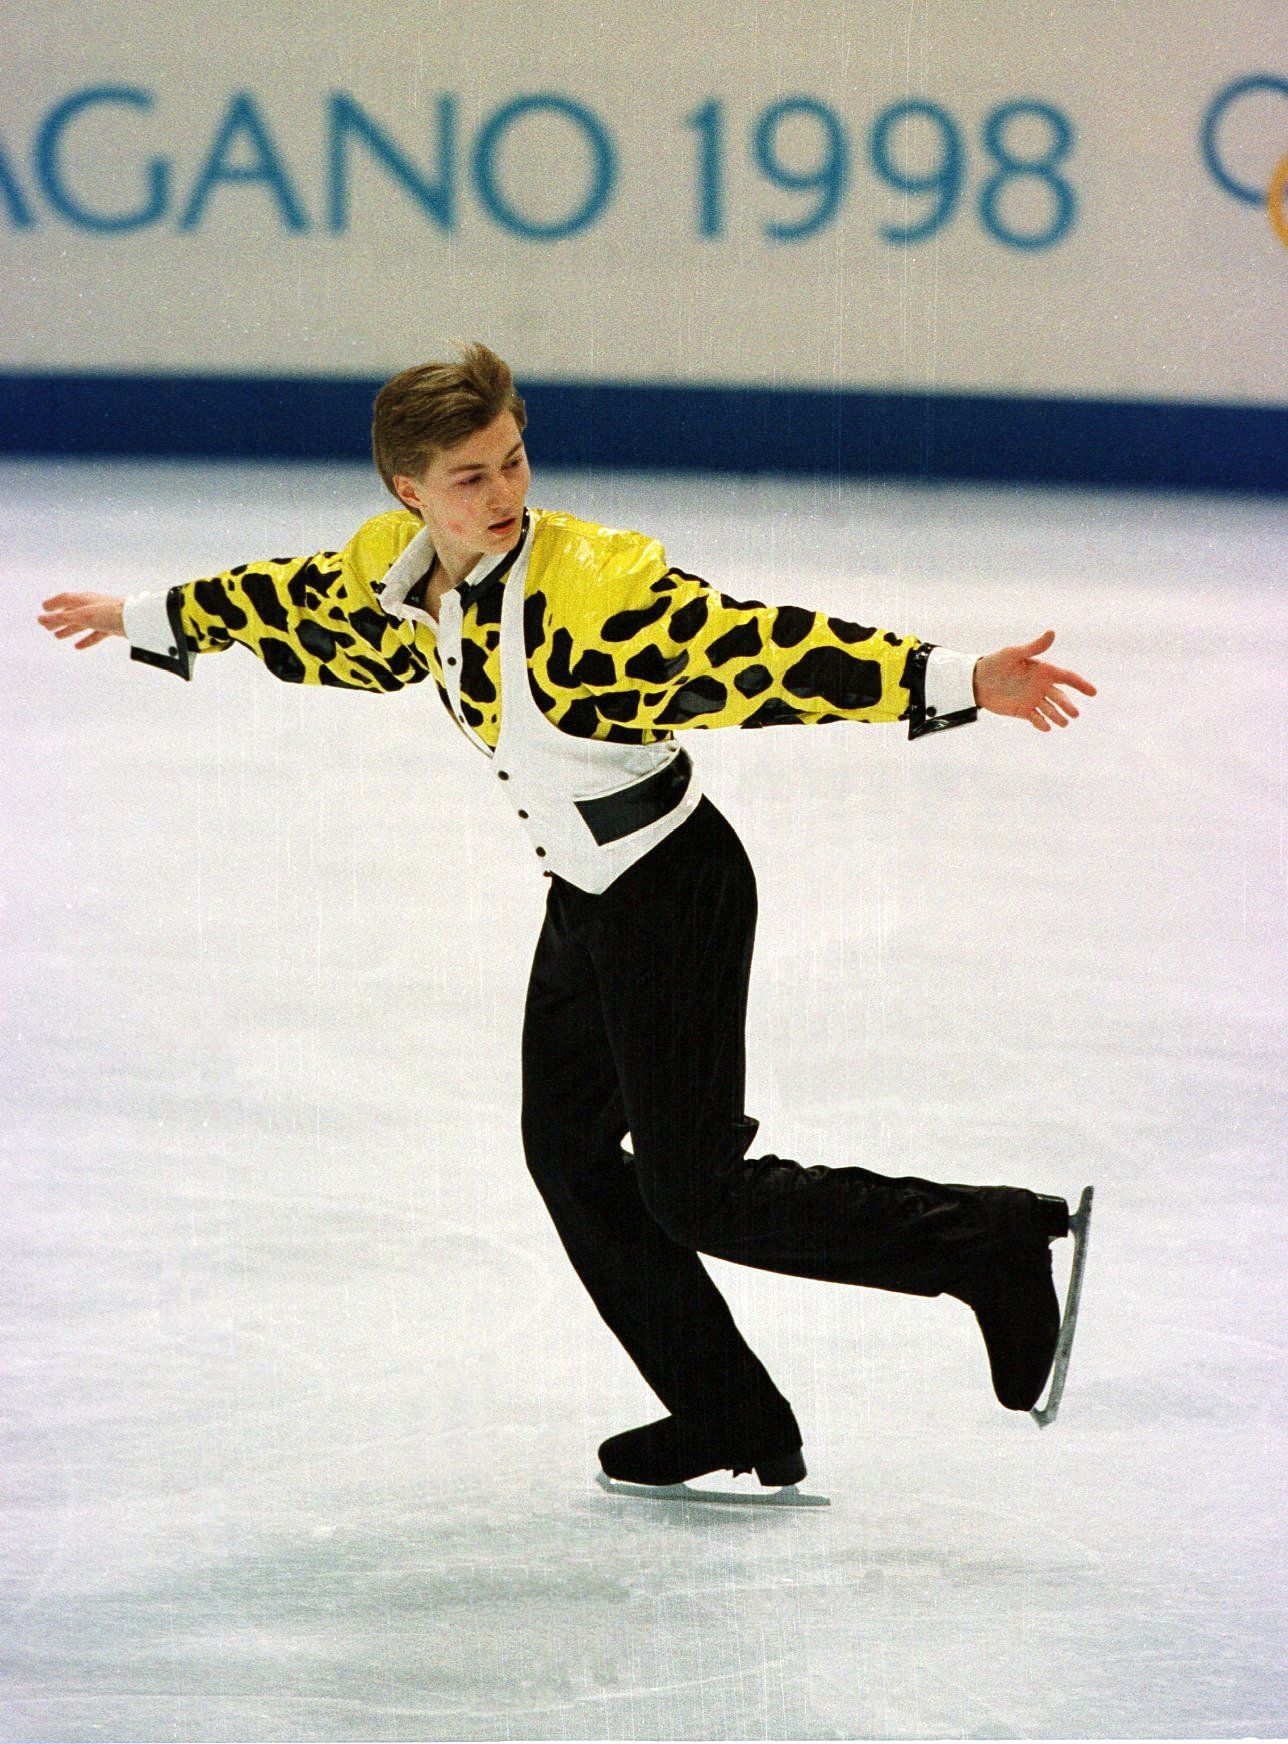 The Russian competing at the 1998 Winter Olympics in Nagano, Japan.